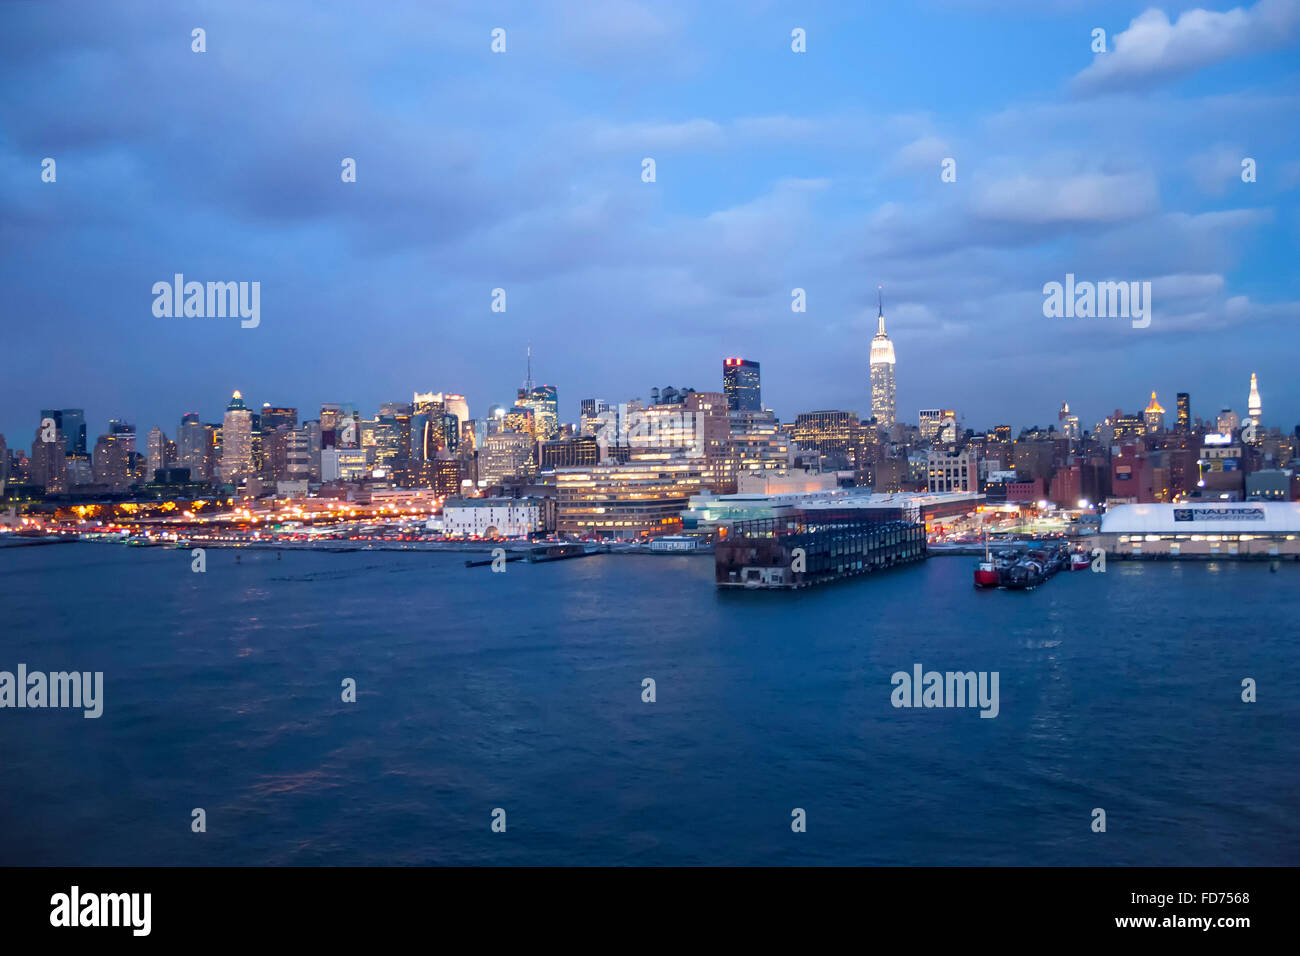 The panorama of Midtown Manhattan coast viewed from the Hudson River at night in New York City, USA. Stock Photo